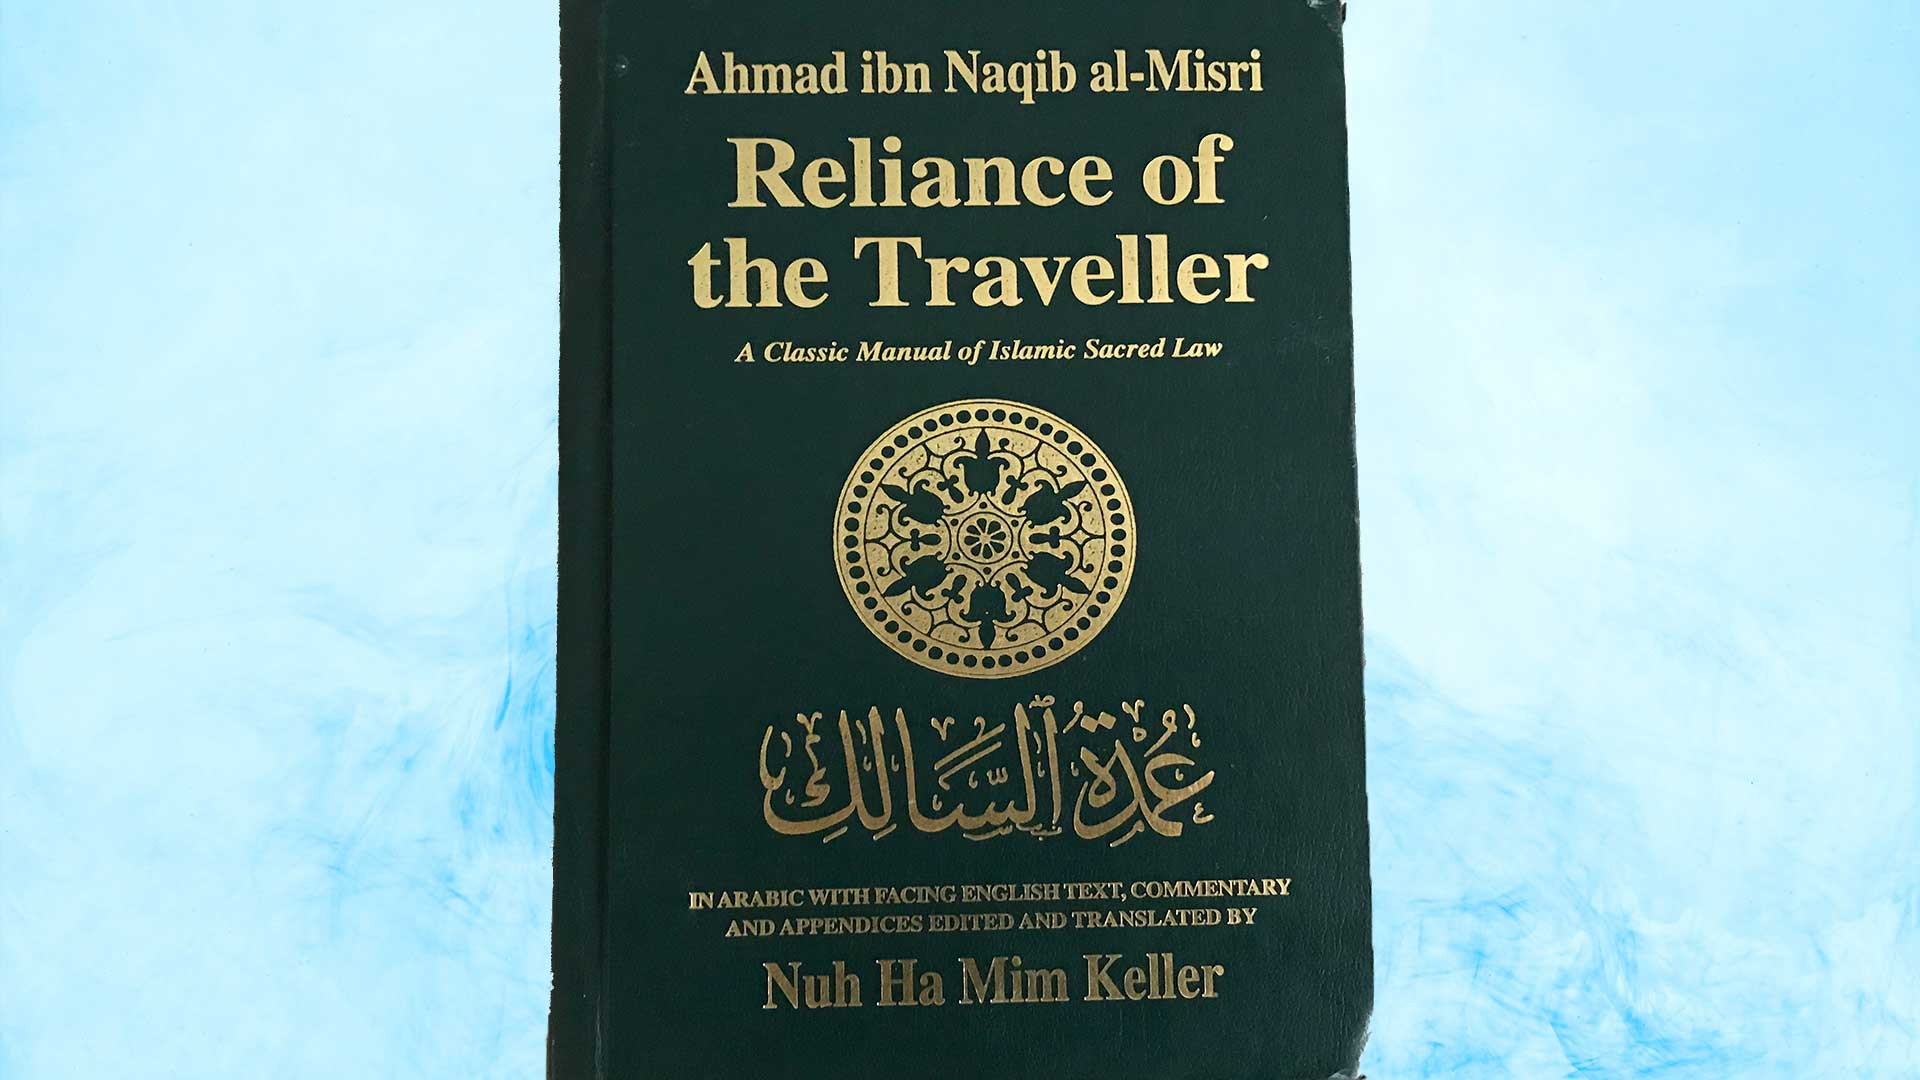 Intermediate Shafi'i Fiqh: The Reliance of the Traveller—Purification, Prayer, and related topics - Farid Dingle